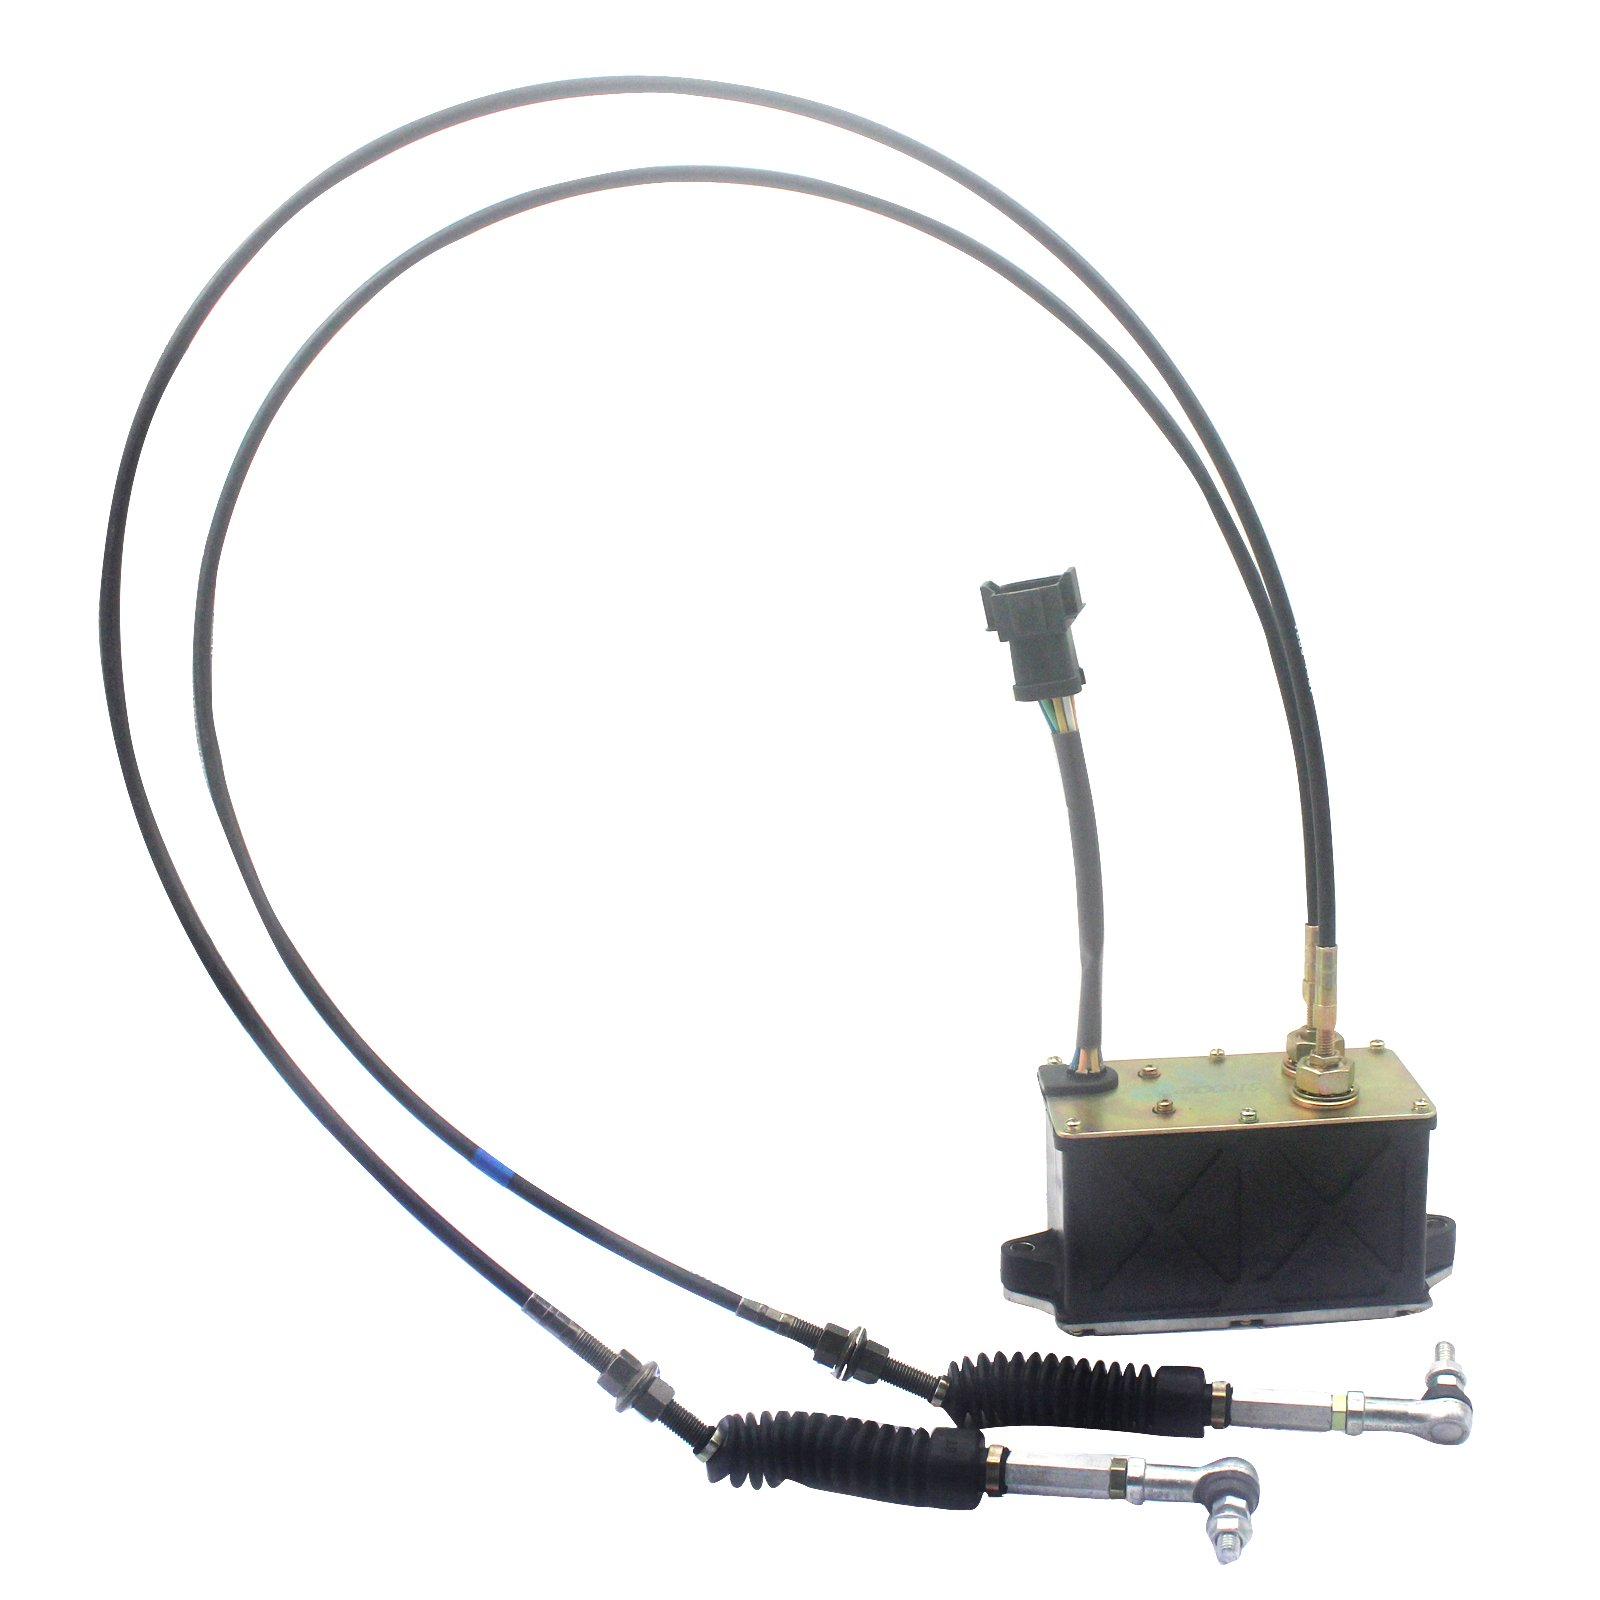 SINOCMP 247-5212 2475212 Stepper Governor 2 Cables 7 Pins Square Plug for Caterpillar 312CL E312CL Throttle Motor Parts 6 Month Warranty by SINOCMP